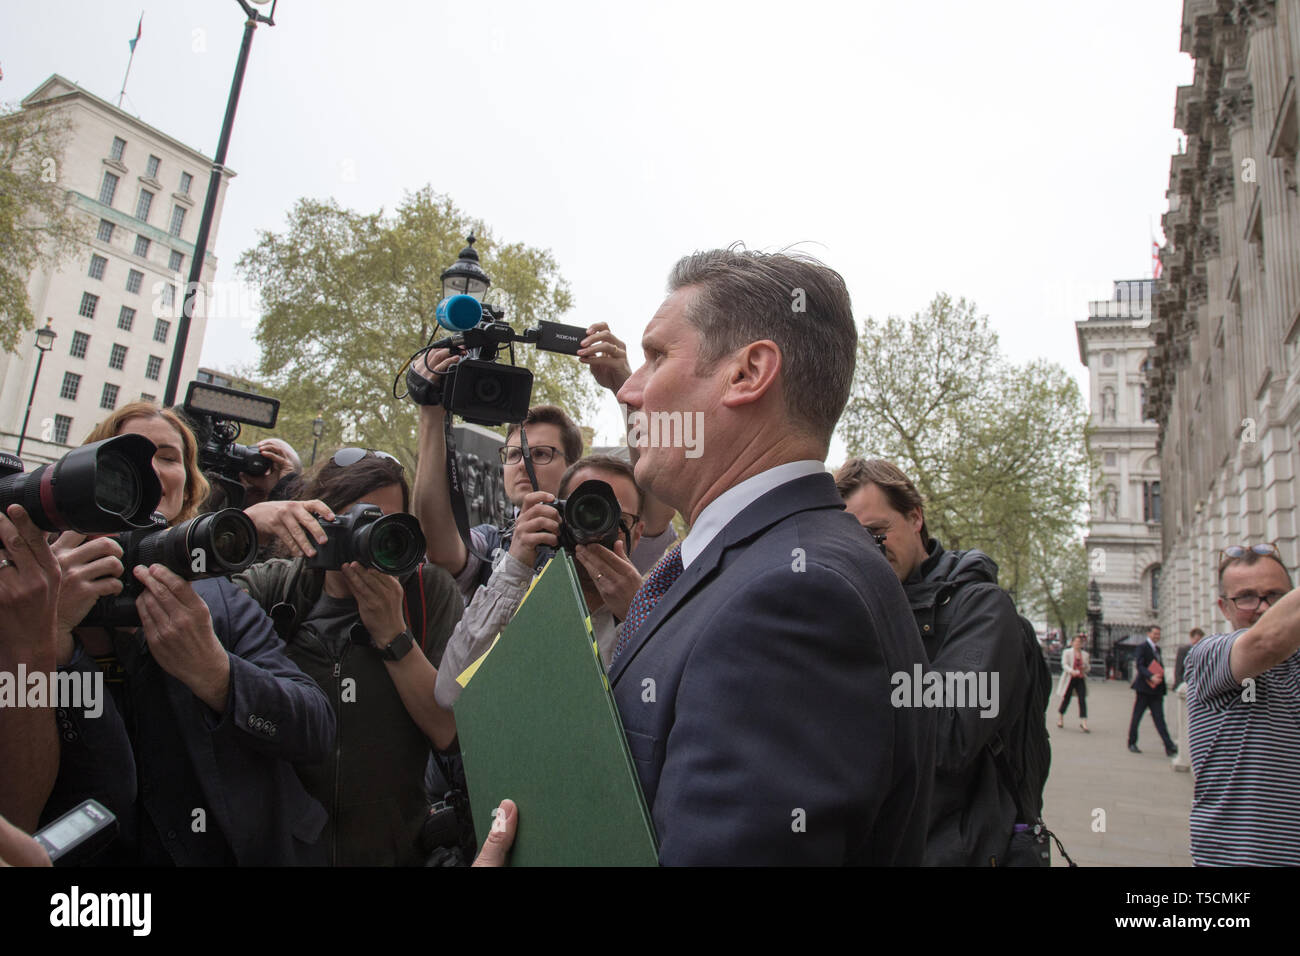 Cabinet Office, London, UK. 23 April 2019.  Keir Starmer is surrounded by the press as he walks to Cabinet Office to resume Brexit talks with the Government. Credit: Santo Basone/Alamy Live News - Stock Image